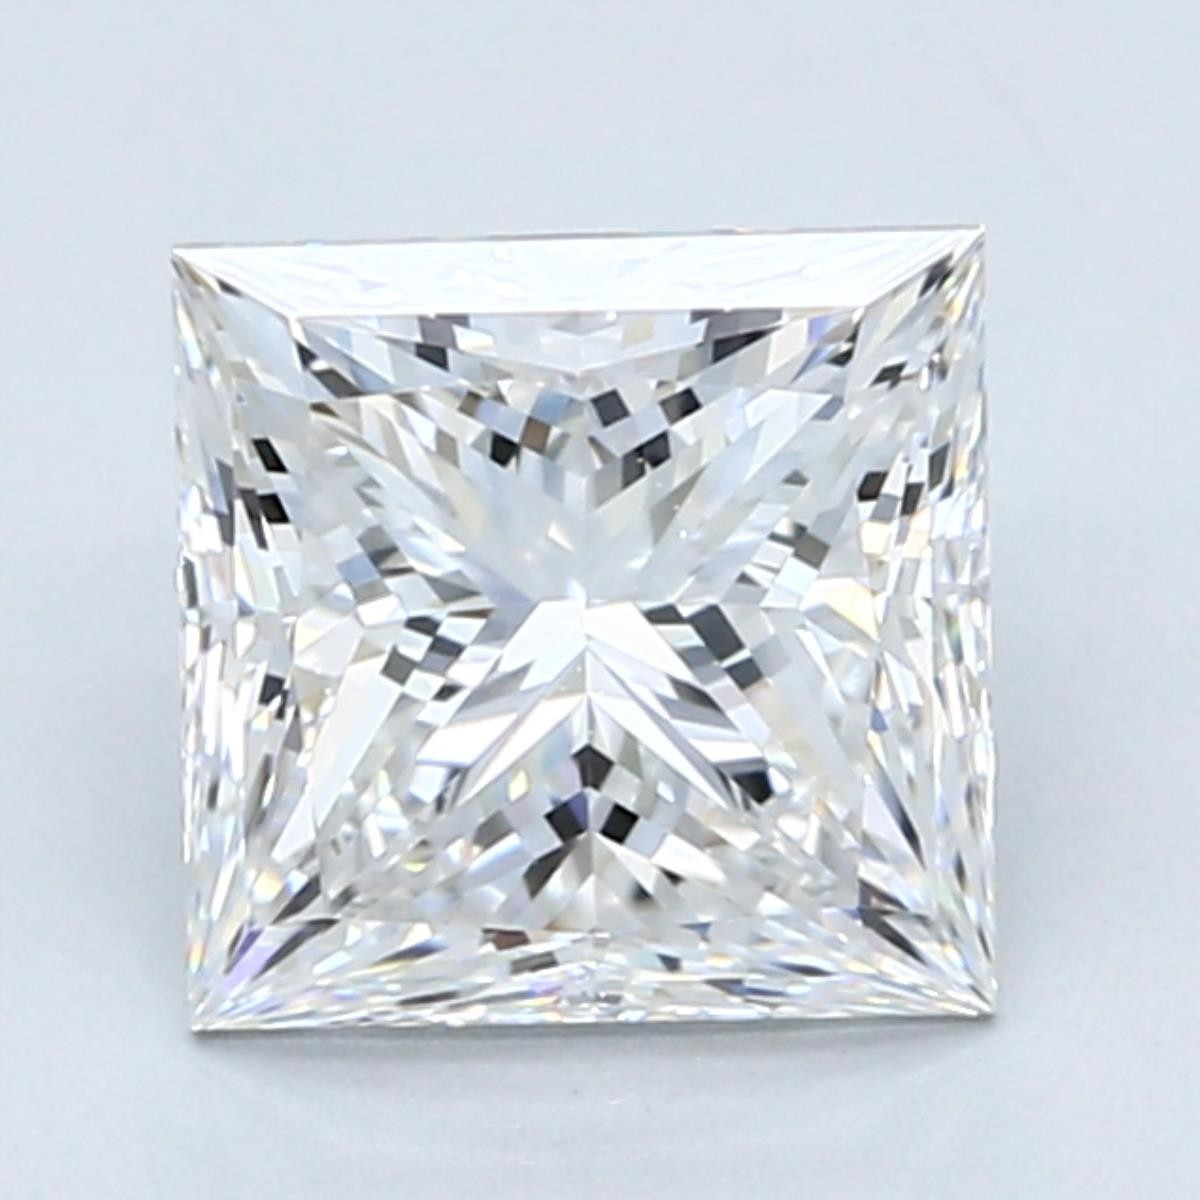 2.5 carat E color princess cut diamond